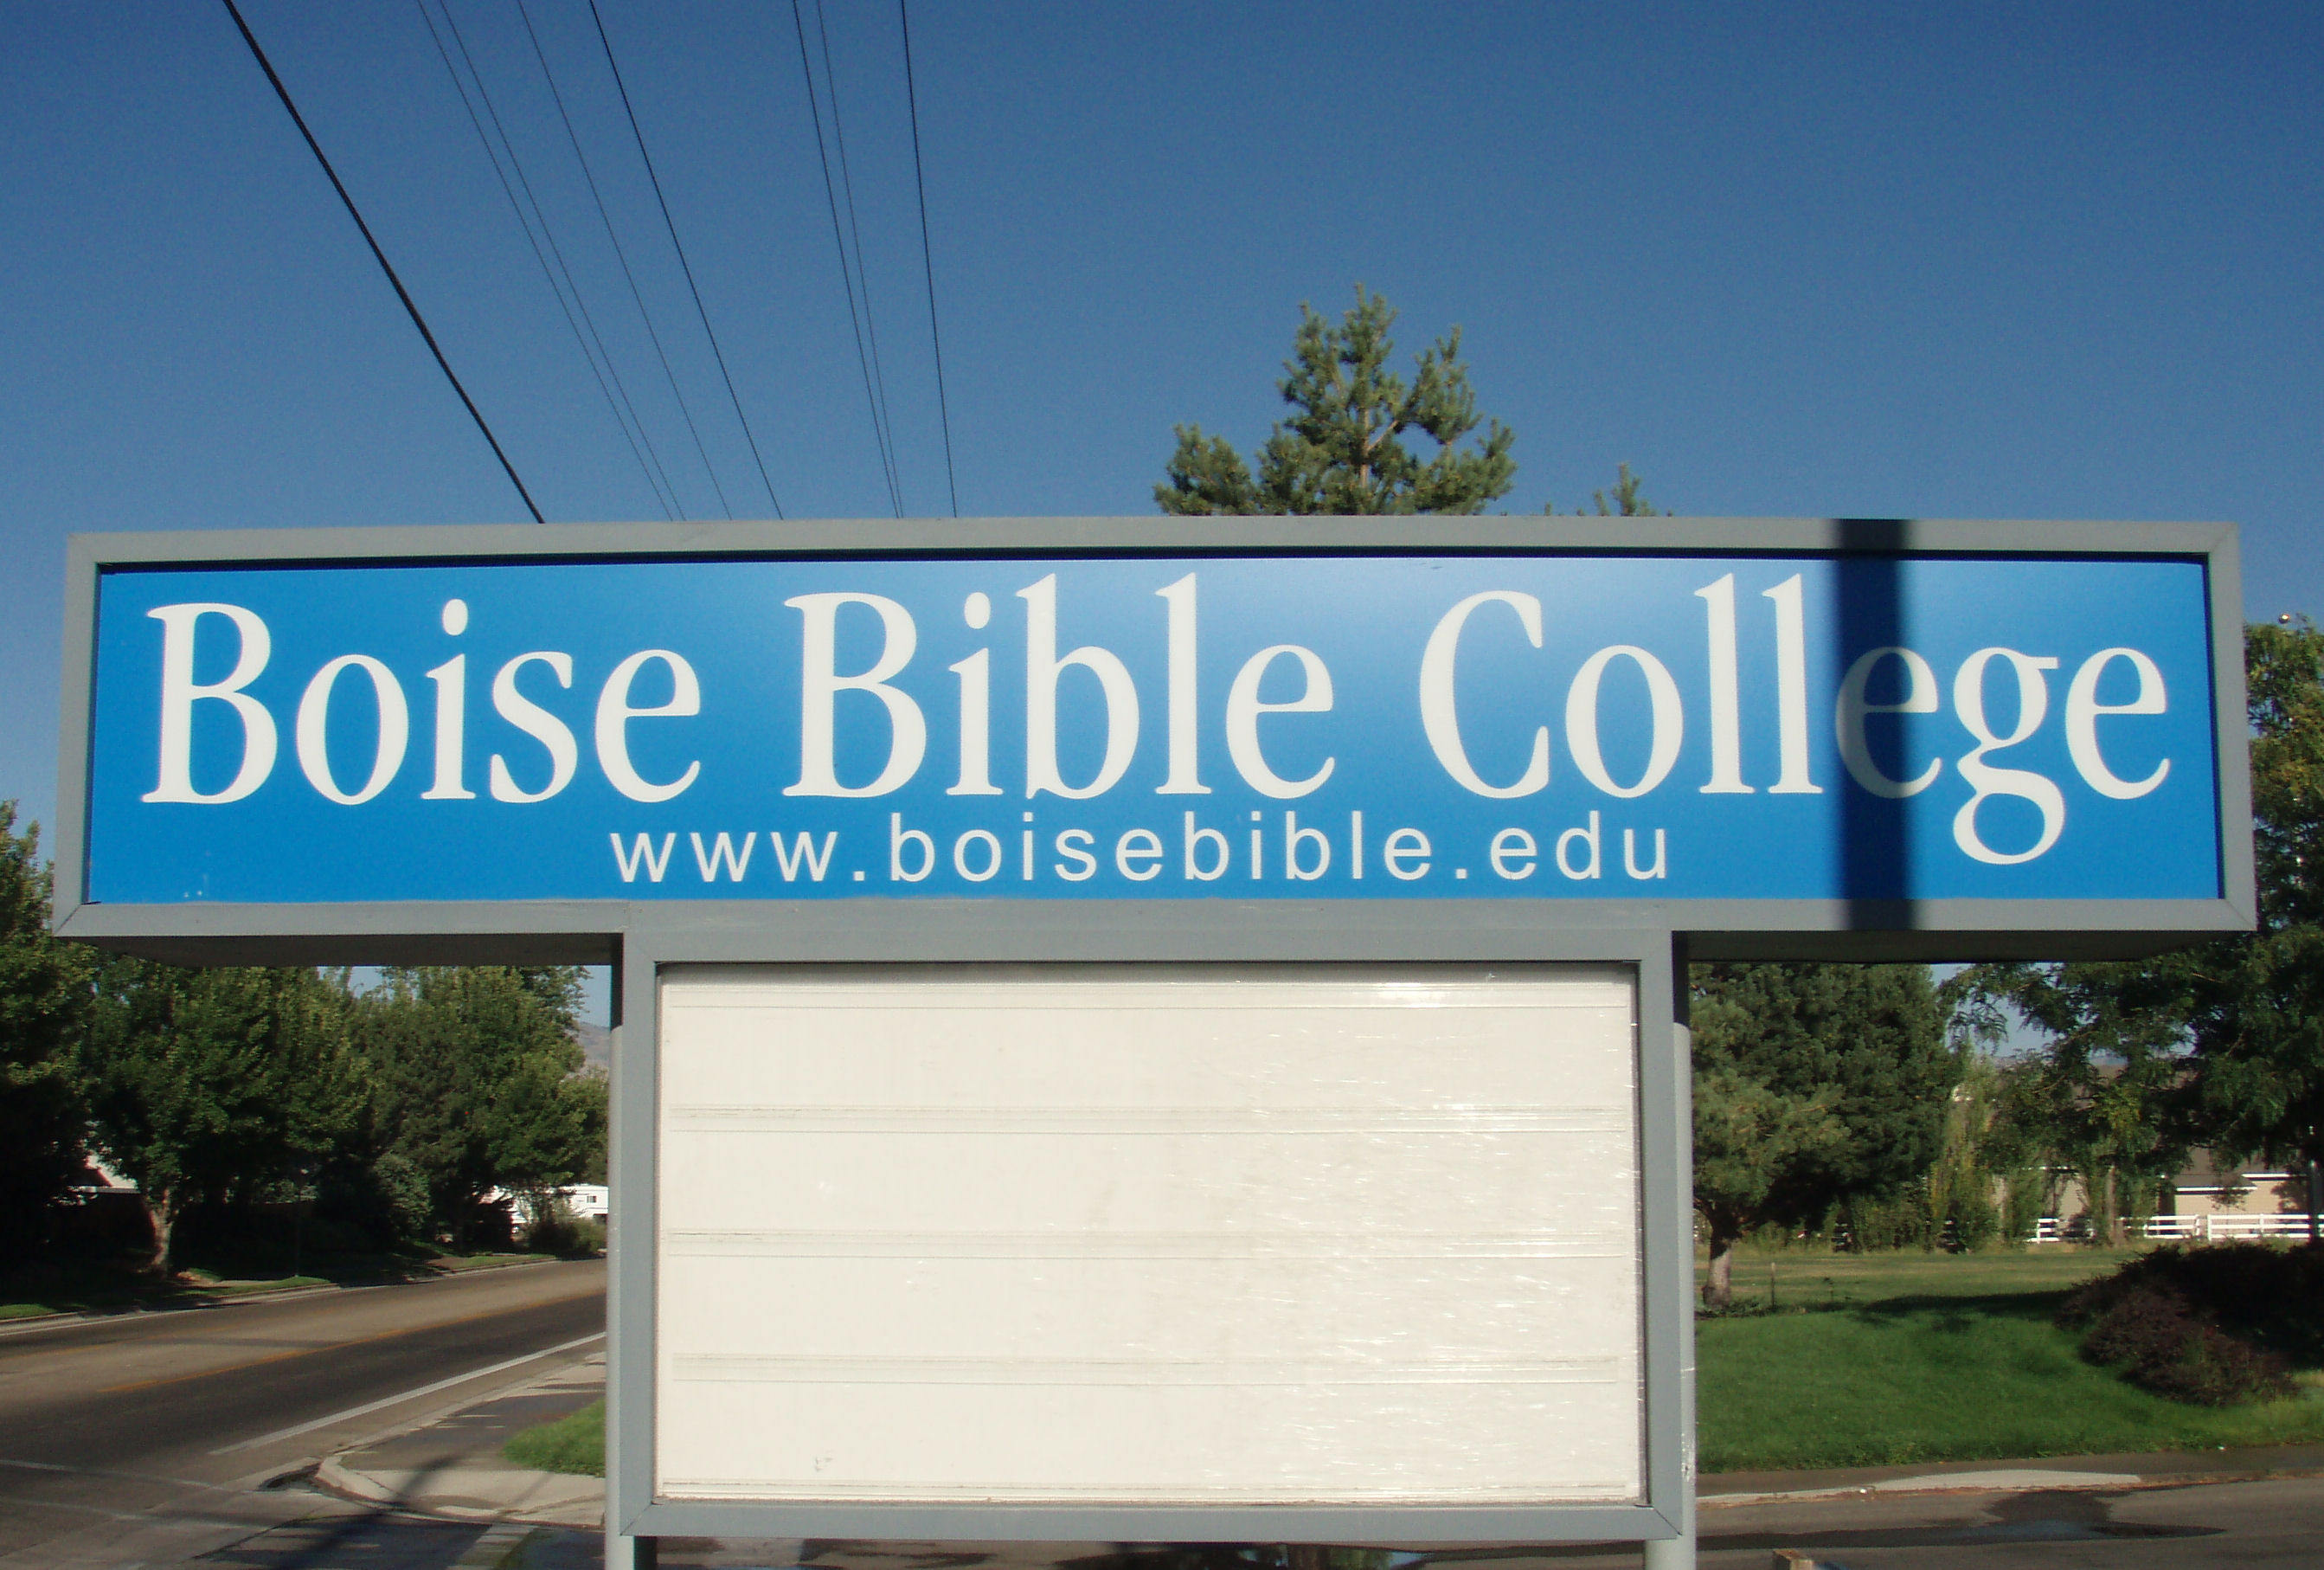 Boise Bible College Garden City Id Sign Close Up